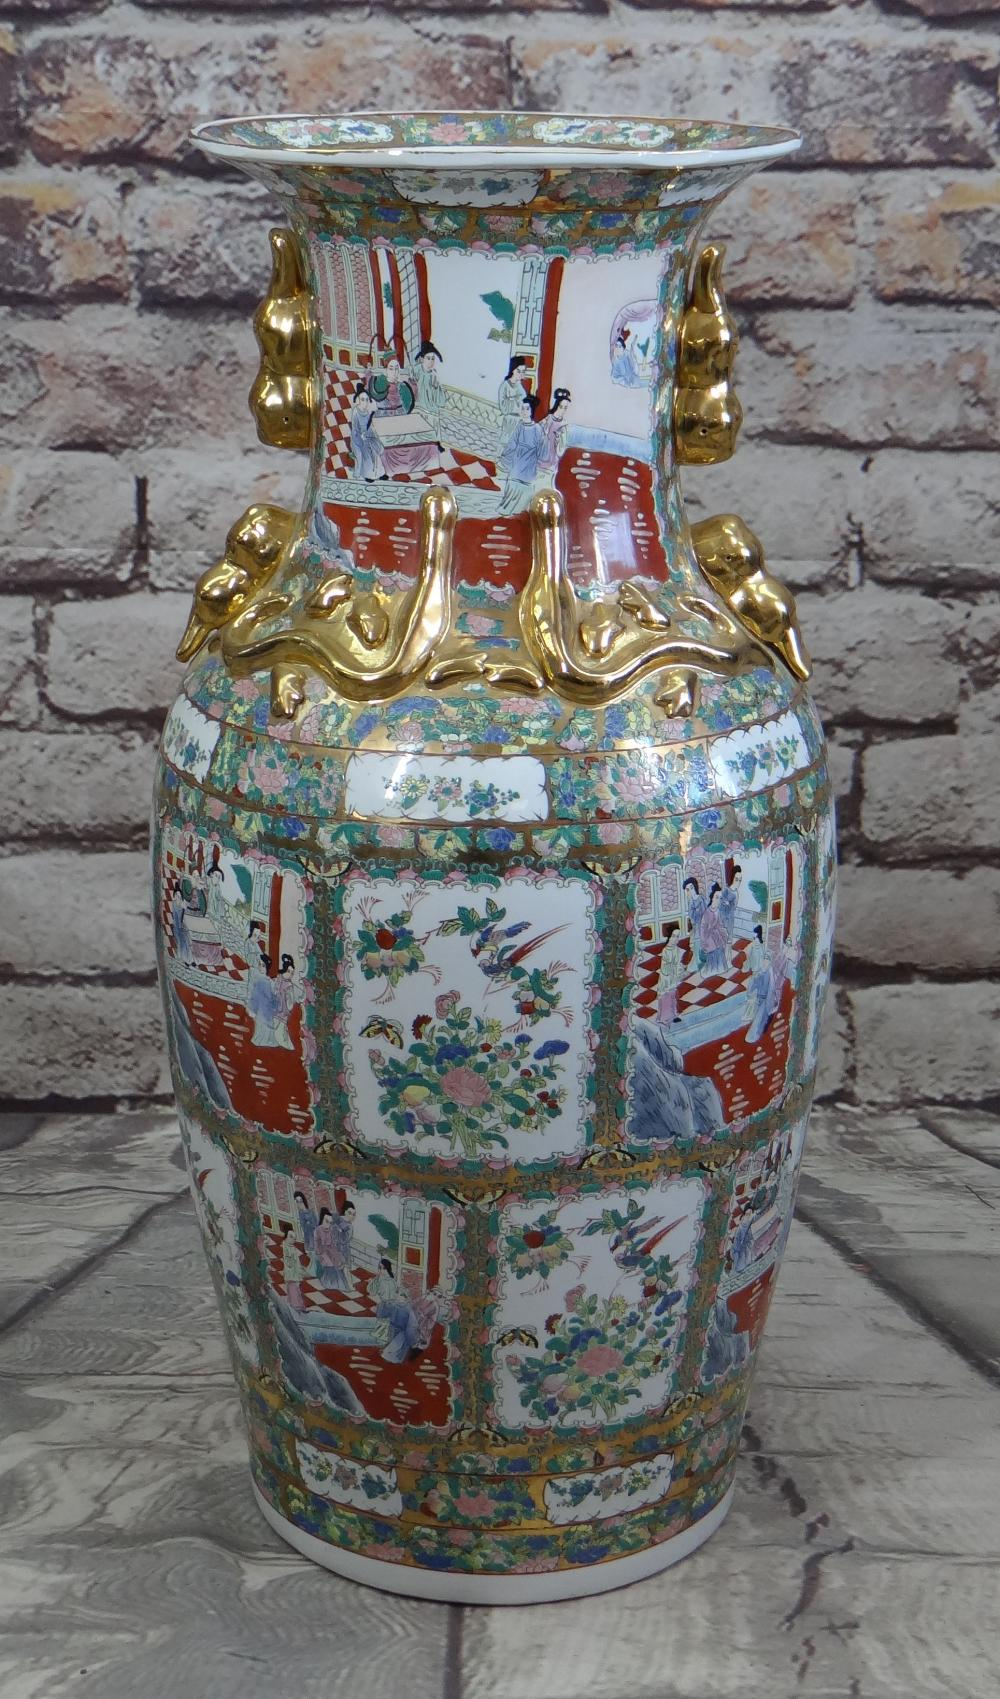 LARGE MODERN CHINESE CANTON FAMILLE ROSE FLOOR VASE, gilt handles, panels decorated with Manchu